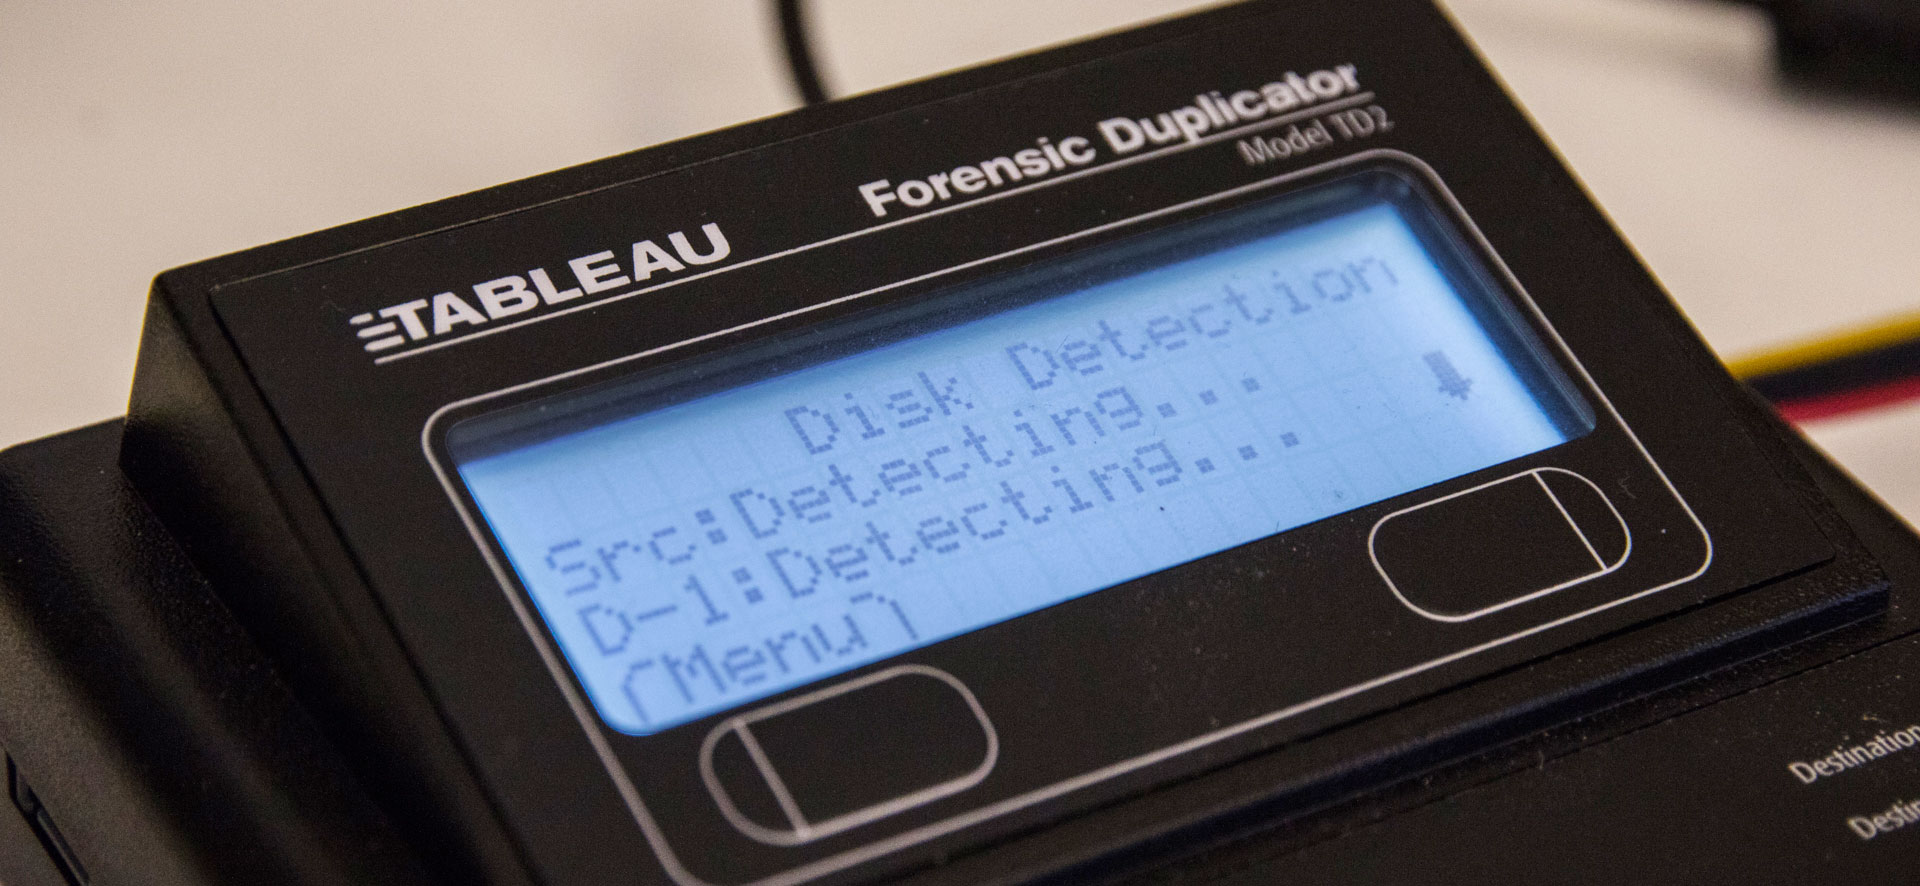 forensic-duplicator-cyber-security-device